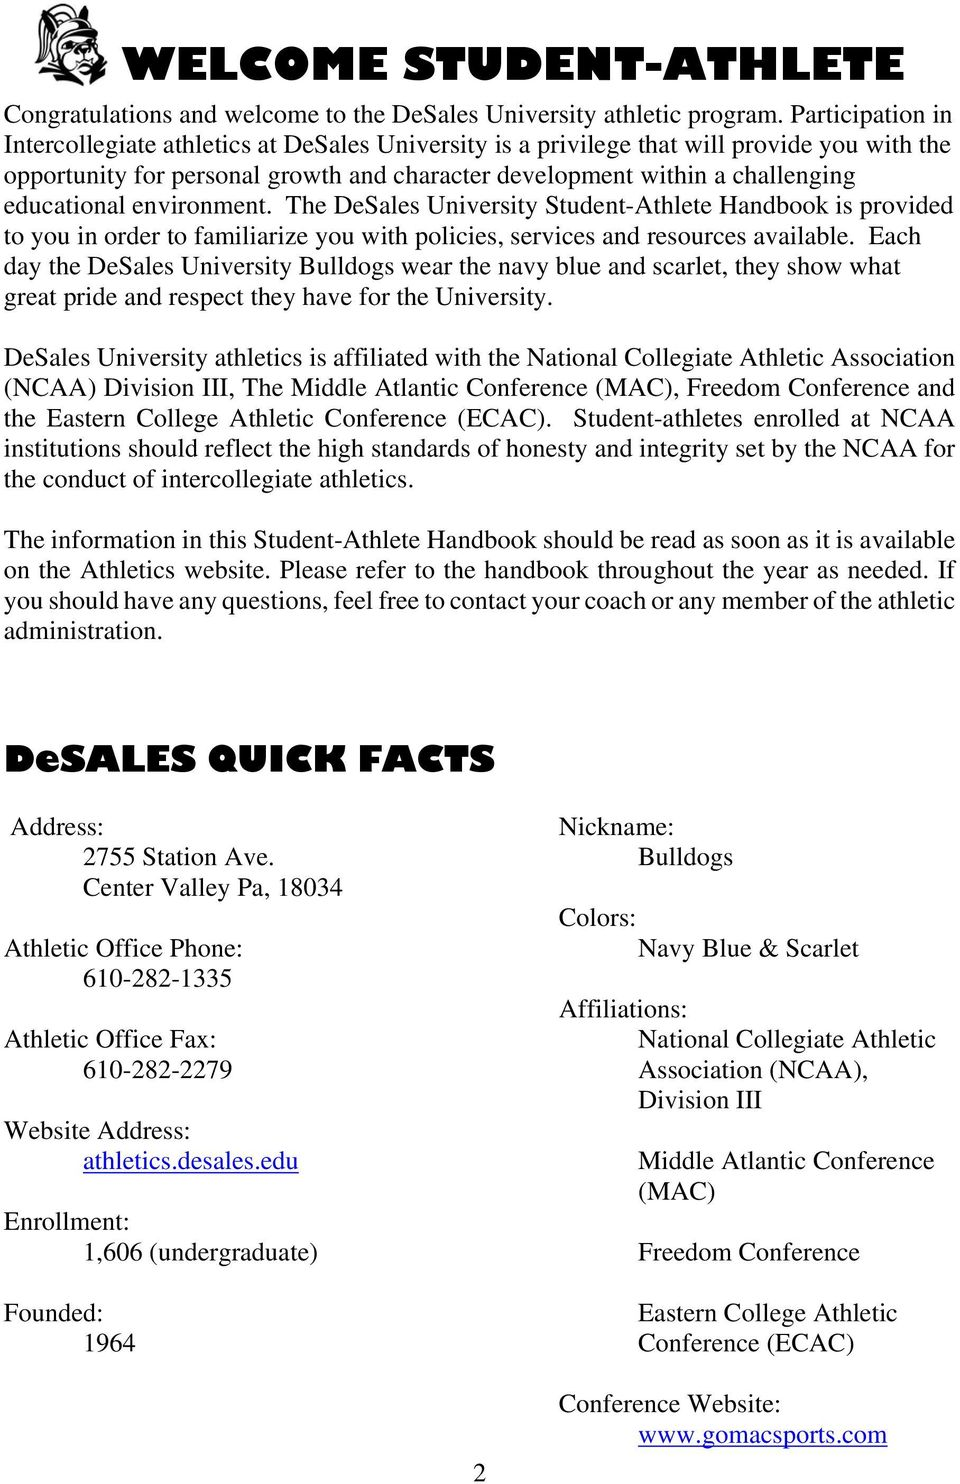 educational environment. The DeSales University Student-Athlete Handbook is provided to you in order to familiarize you with policies, services and resources available.